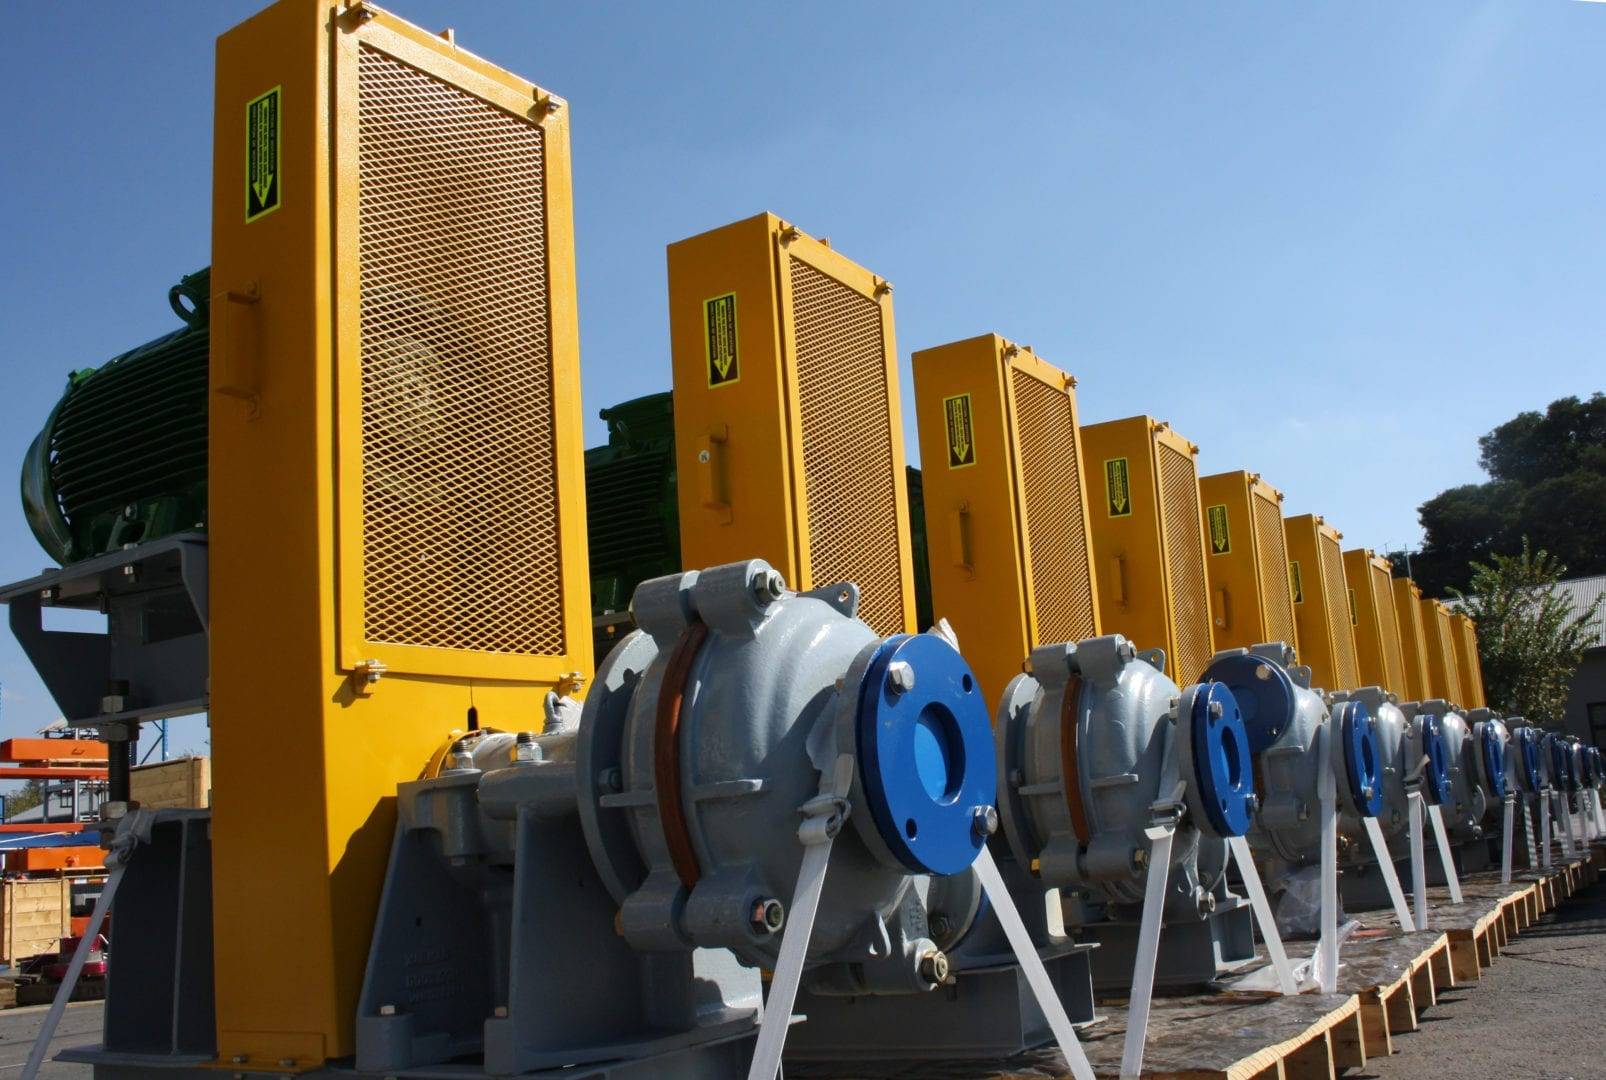 Mill discharge pumps, en route to minerals sands project